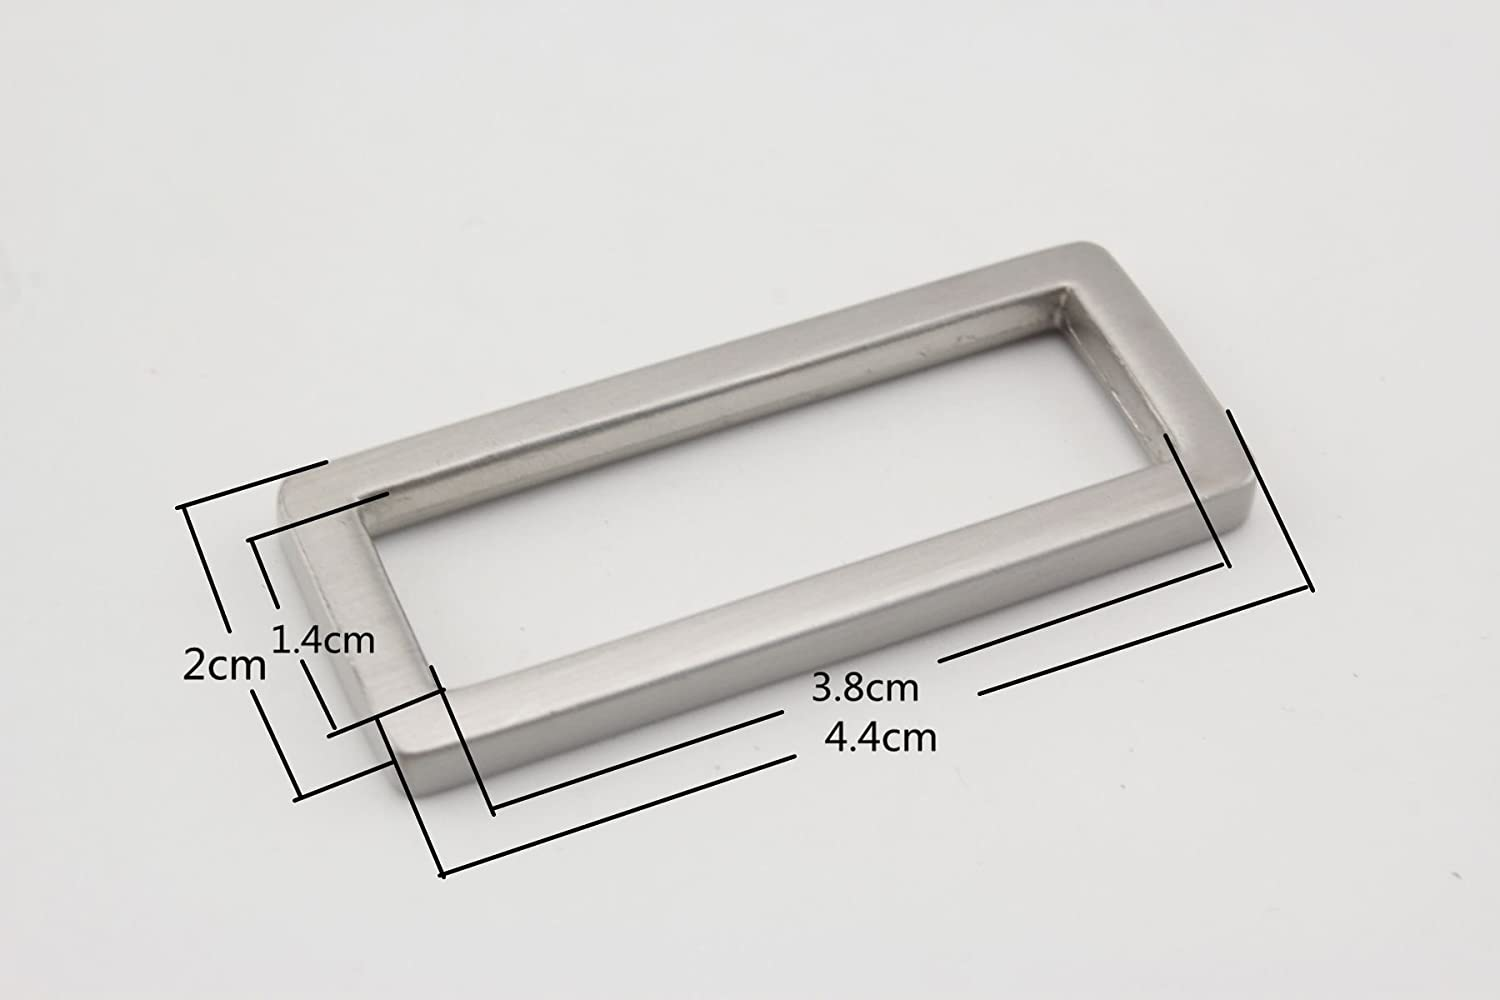 1.5 Inch. Nickel Rectangle Rings inner 10 Pieces Purse Making Accessories 38 mm.3.8 cm.